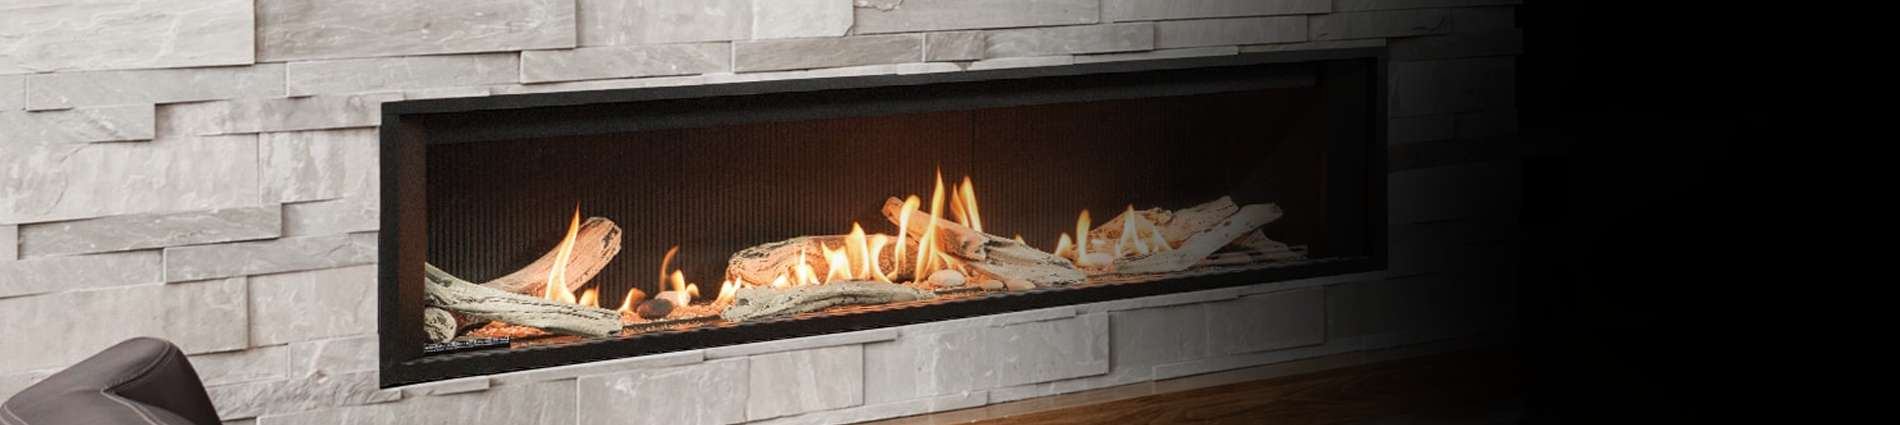 inserts valor hearth product room sutter sided linear home fireplace